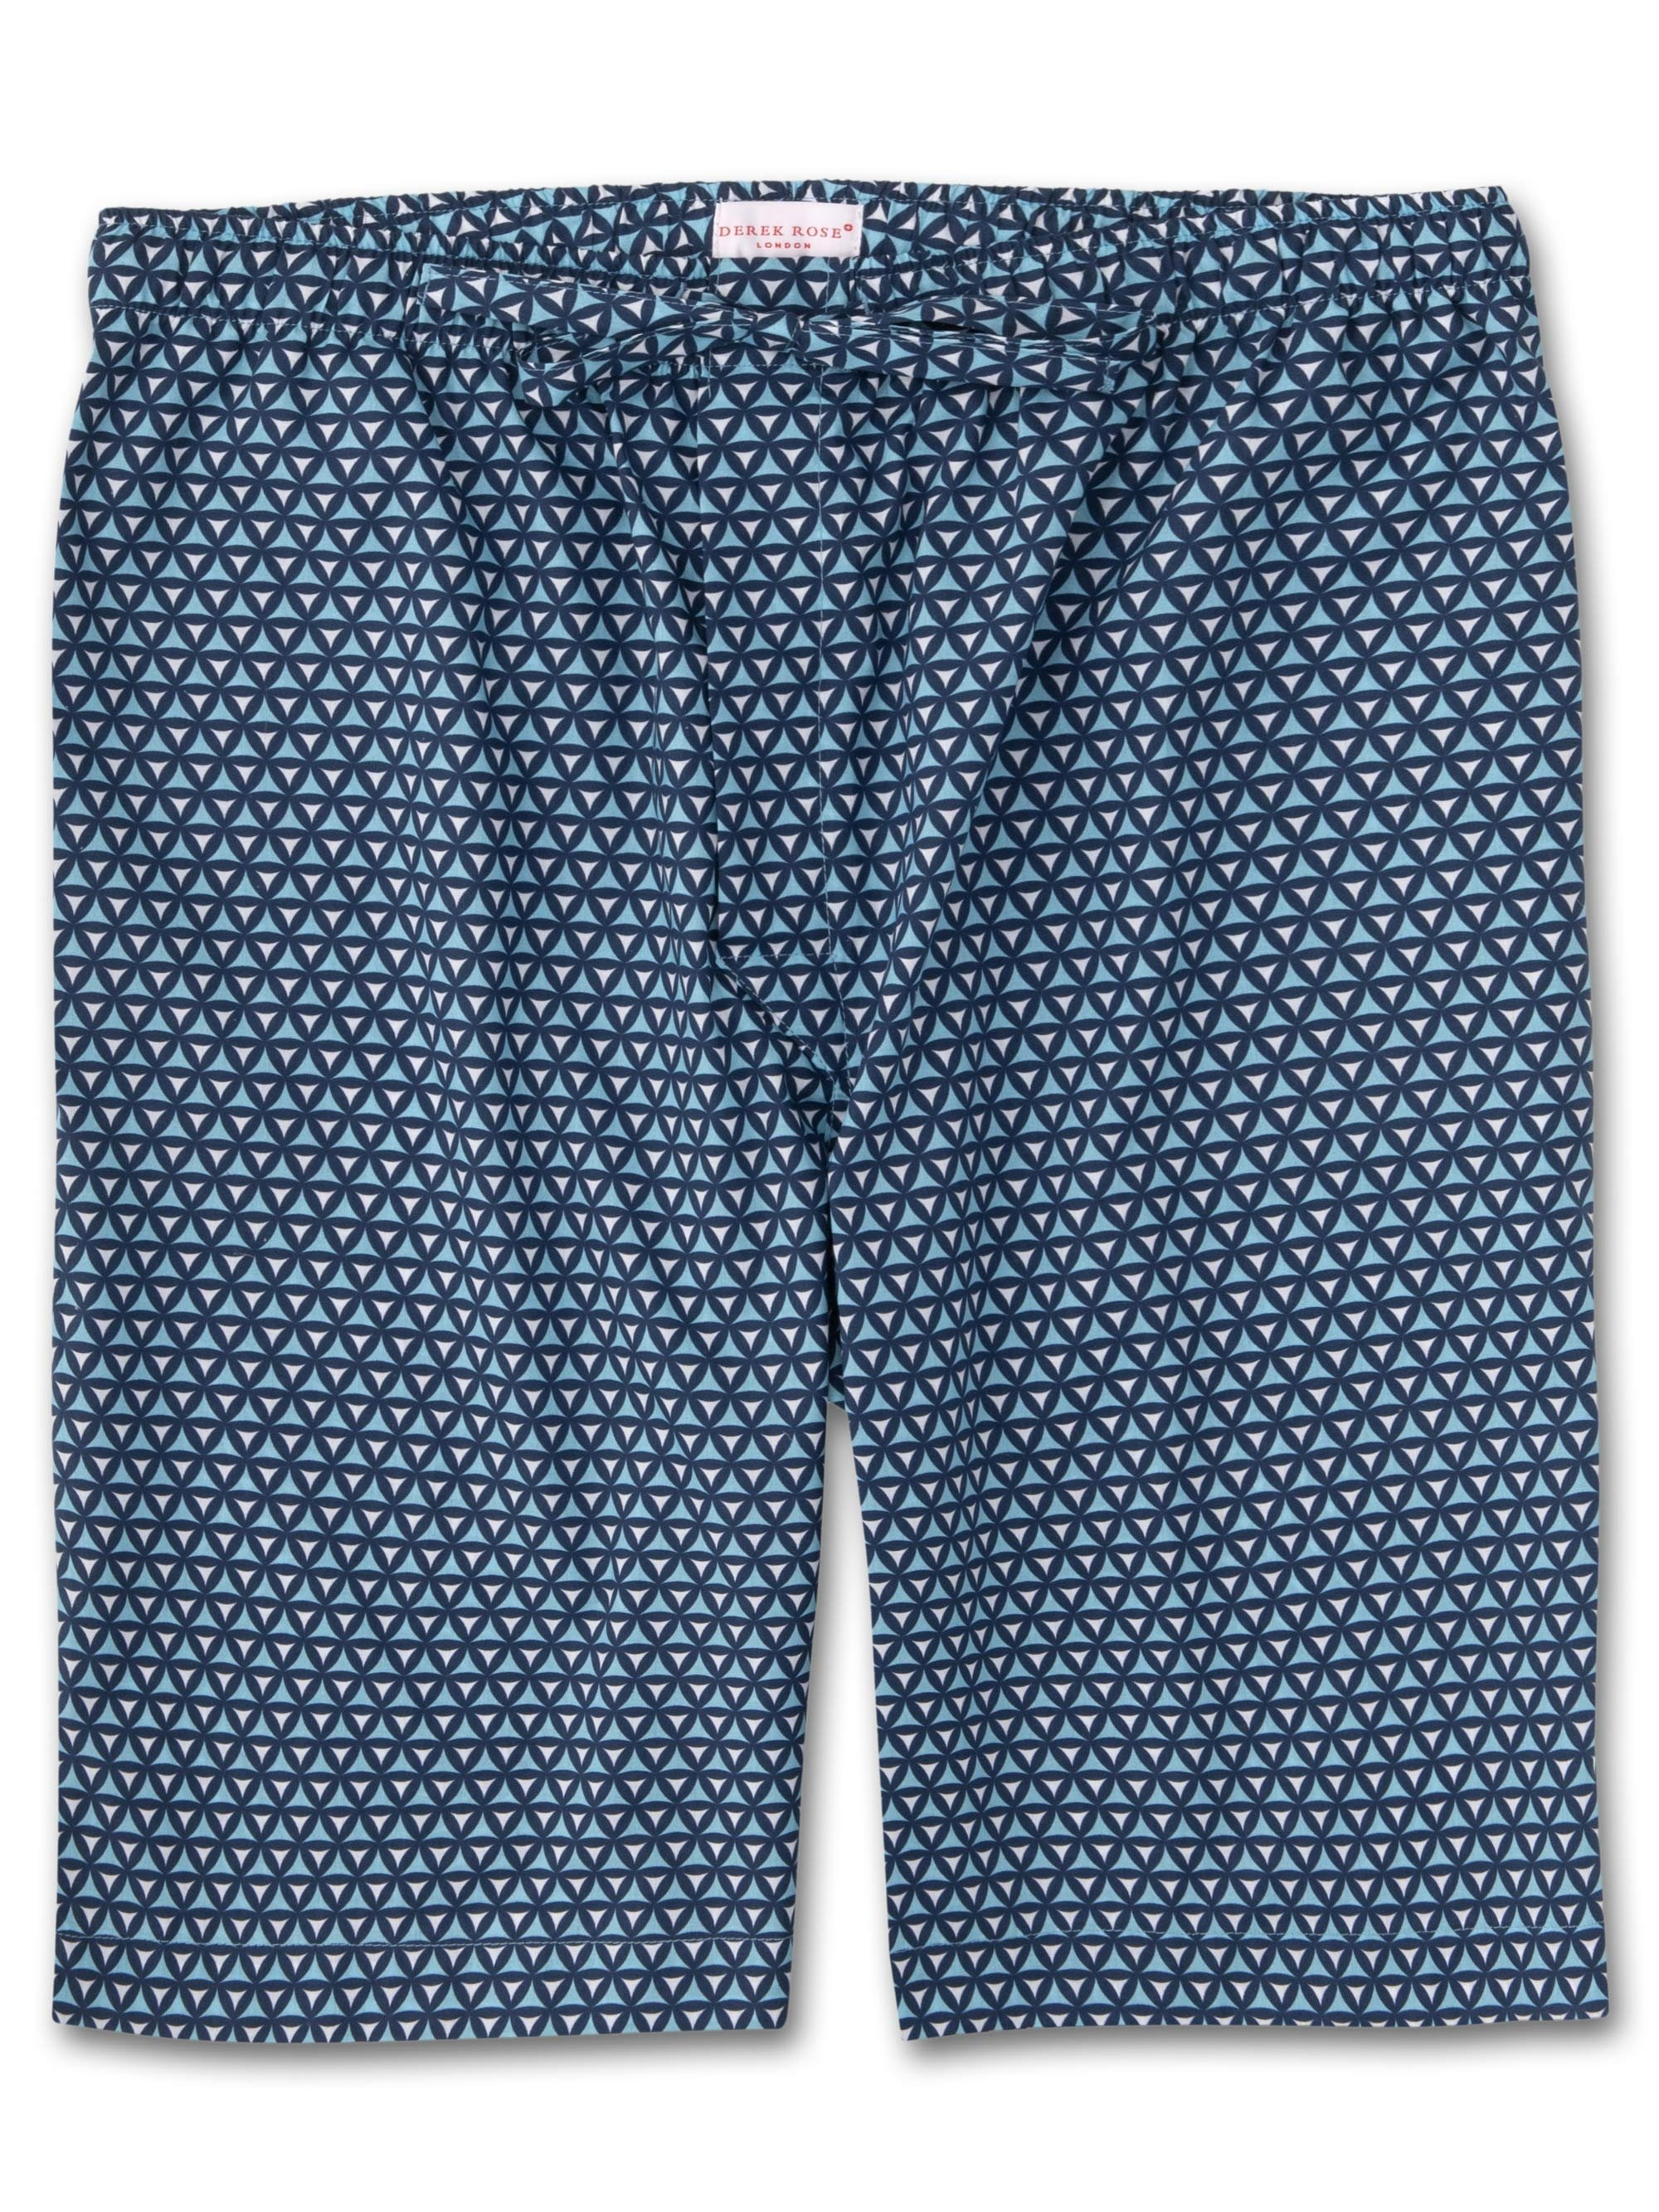 Men's Lounge Shorts Ledbury 26 Cotton Batiste Navy